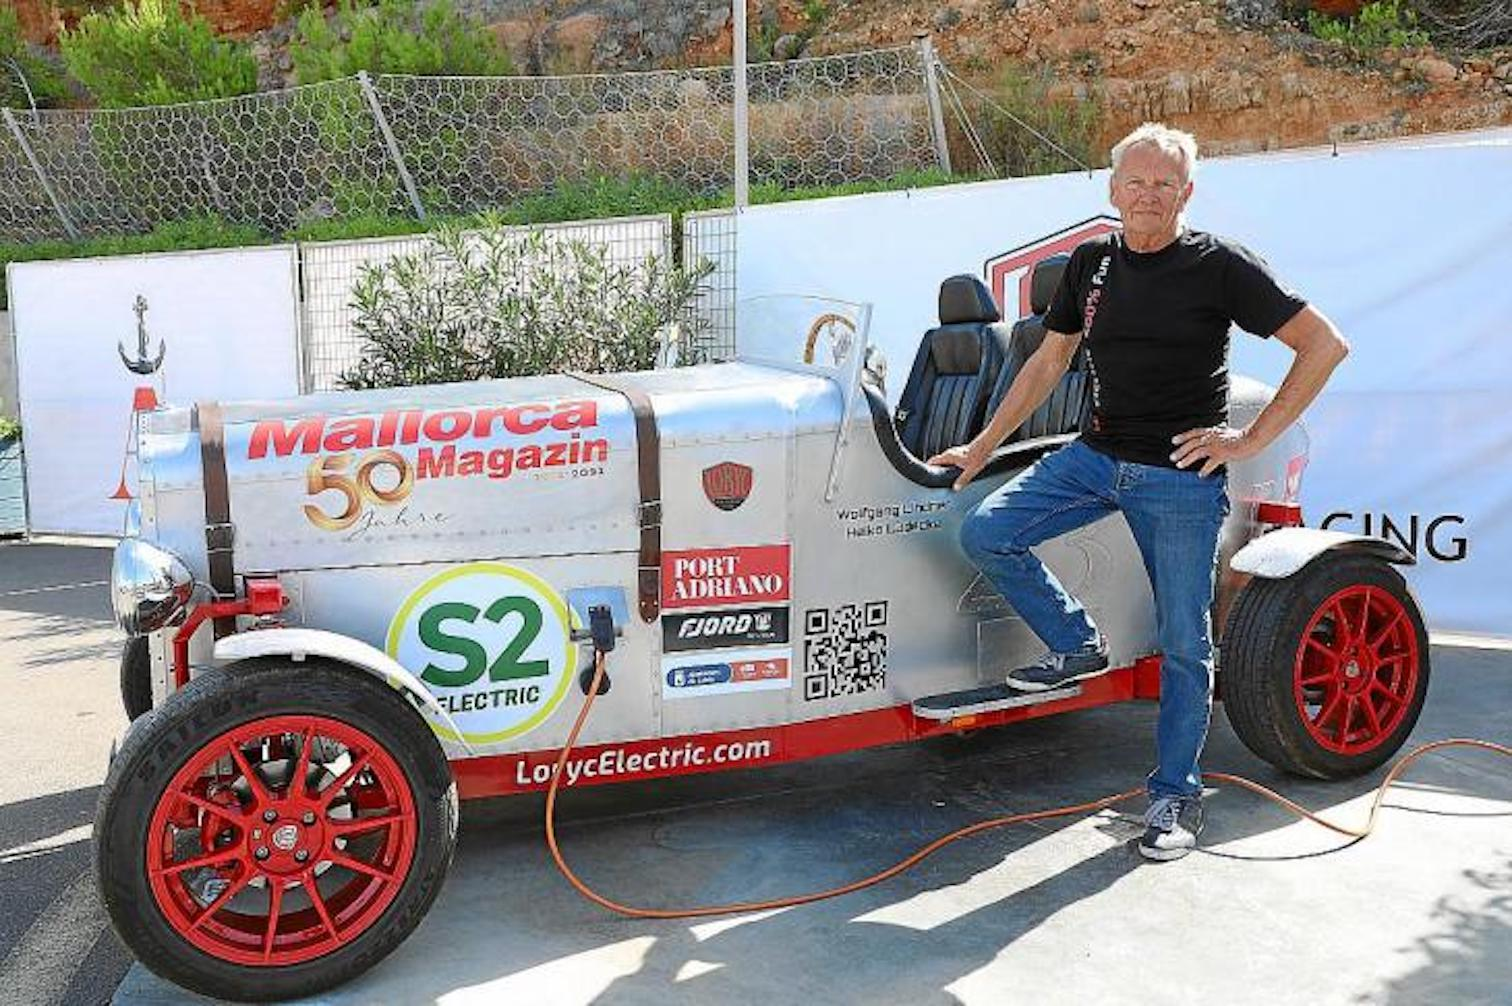 Wolfgang Linder & his Loryc Electric.